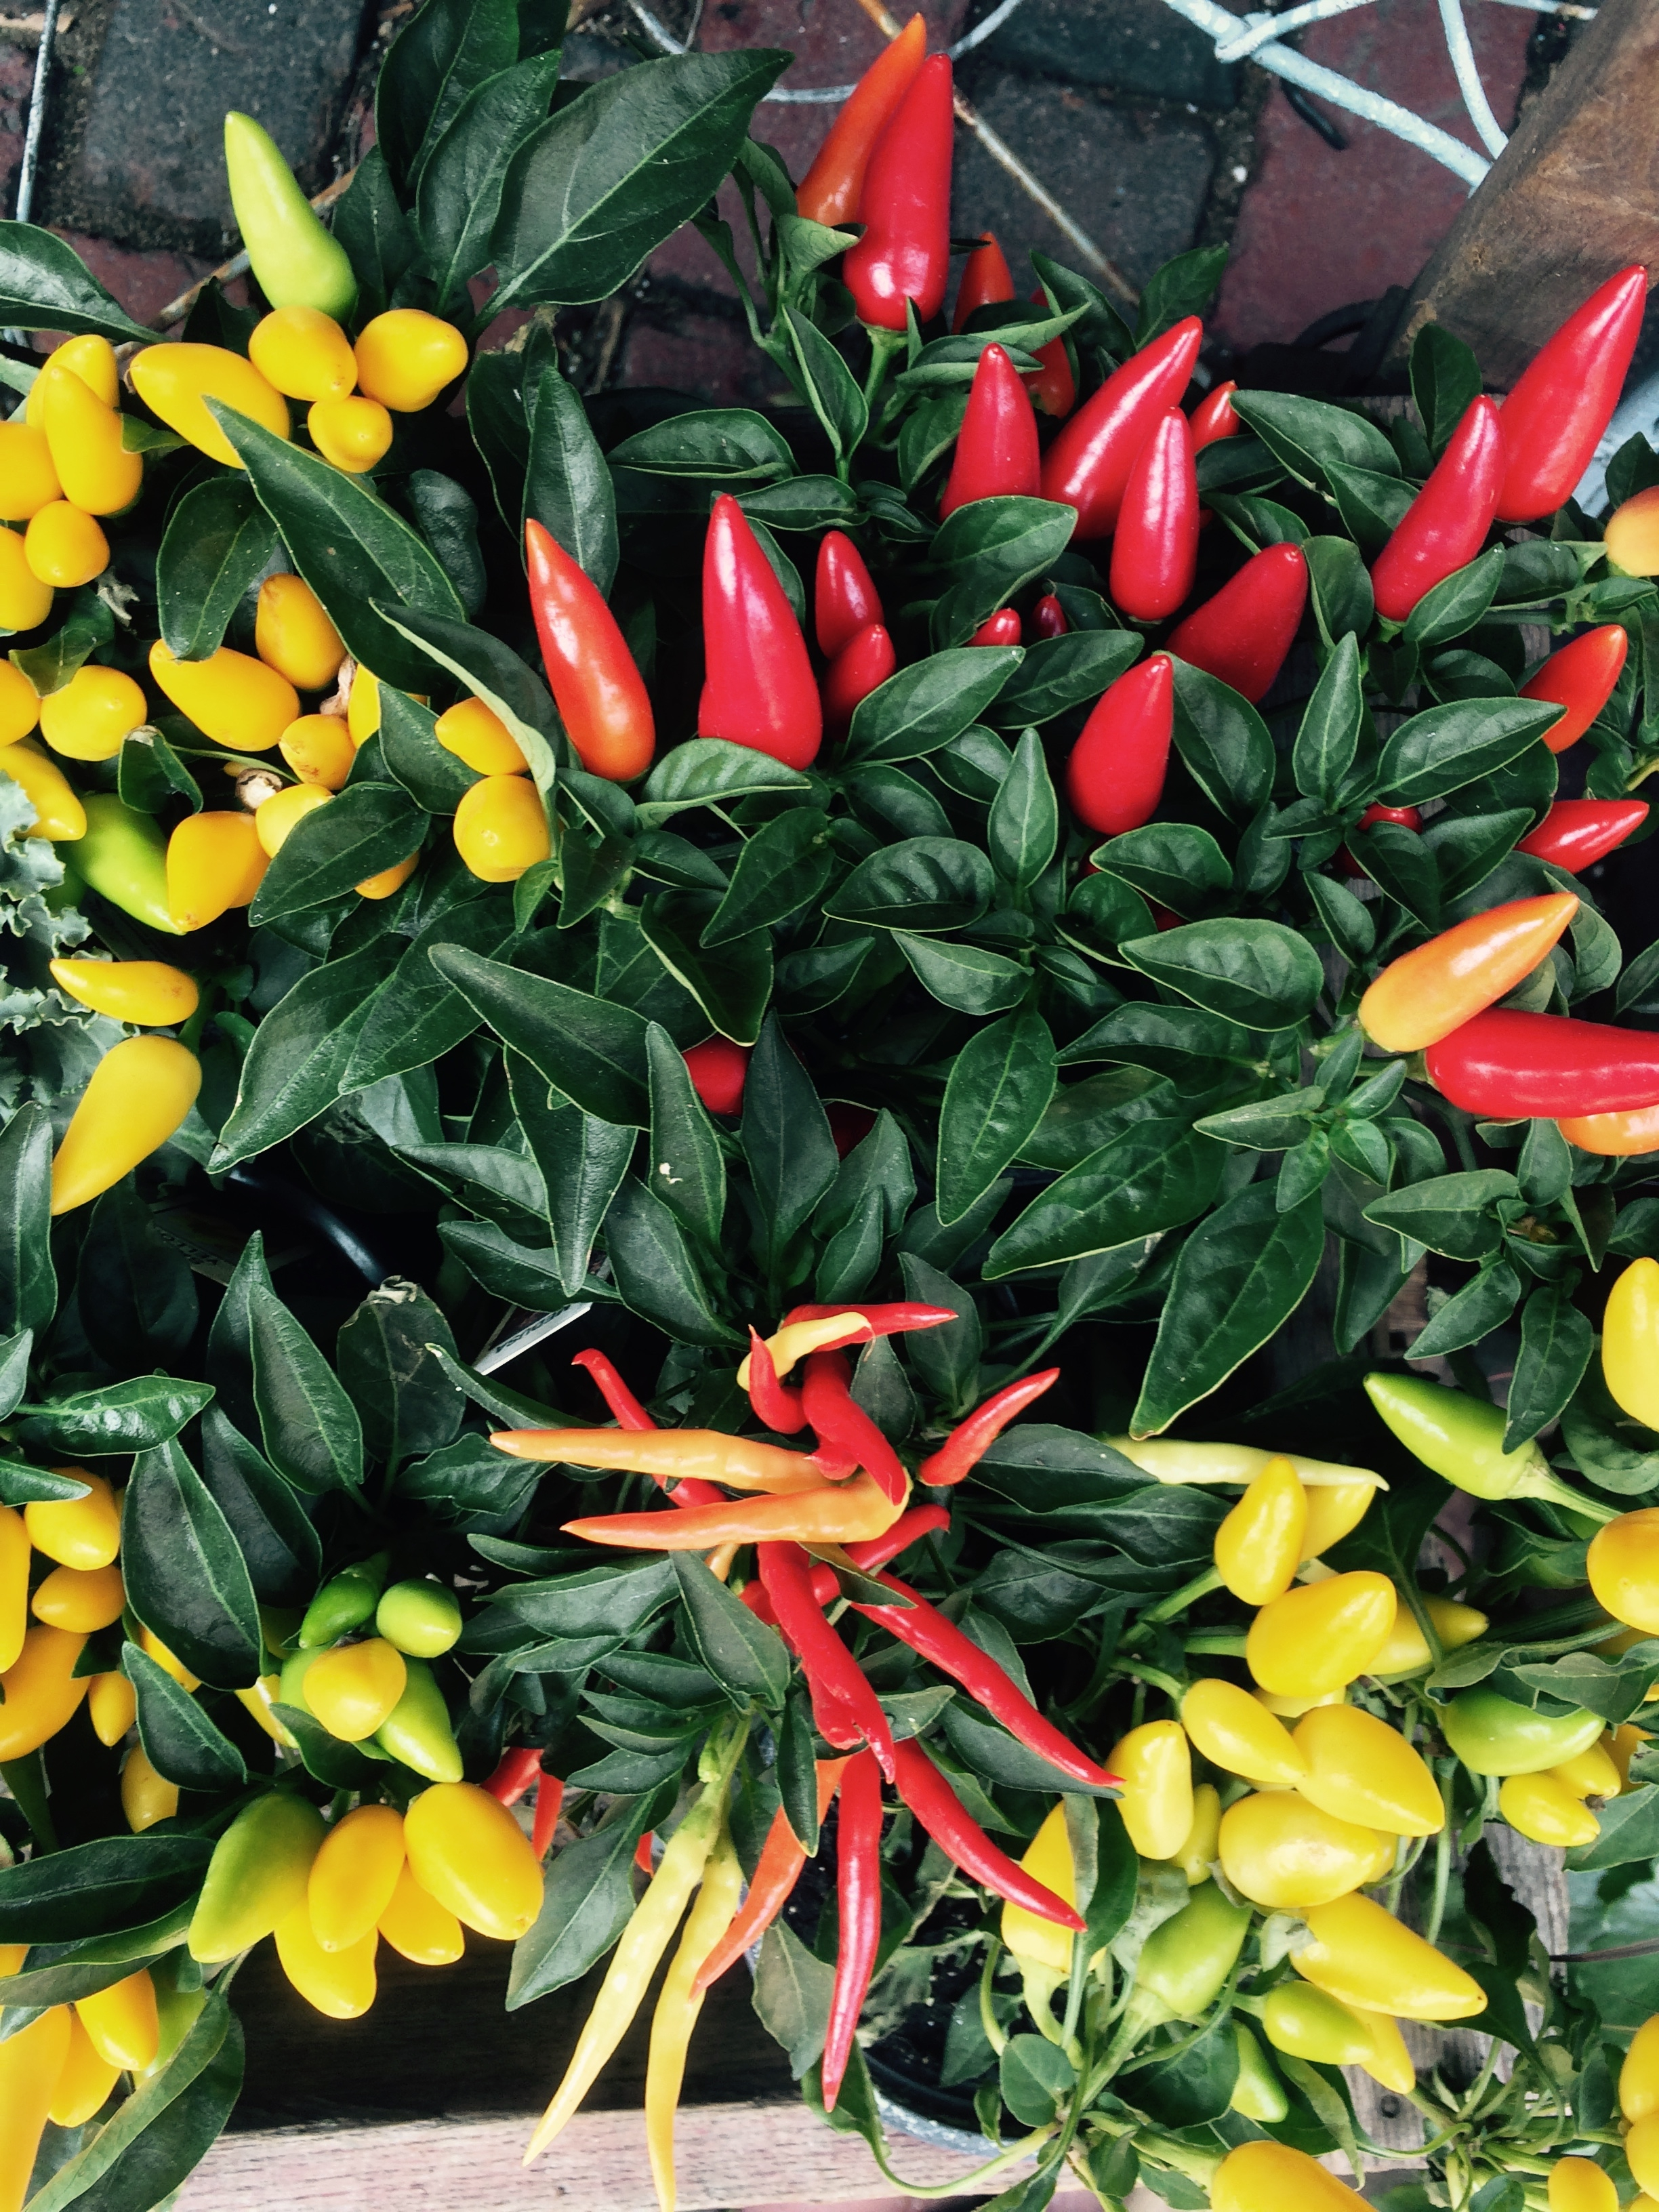 Ornamental peppers are another absolute favorite! I love how many different colors can be seen on each plant.